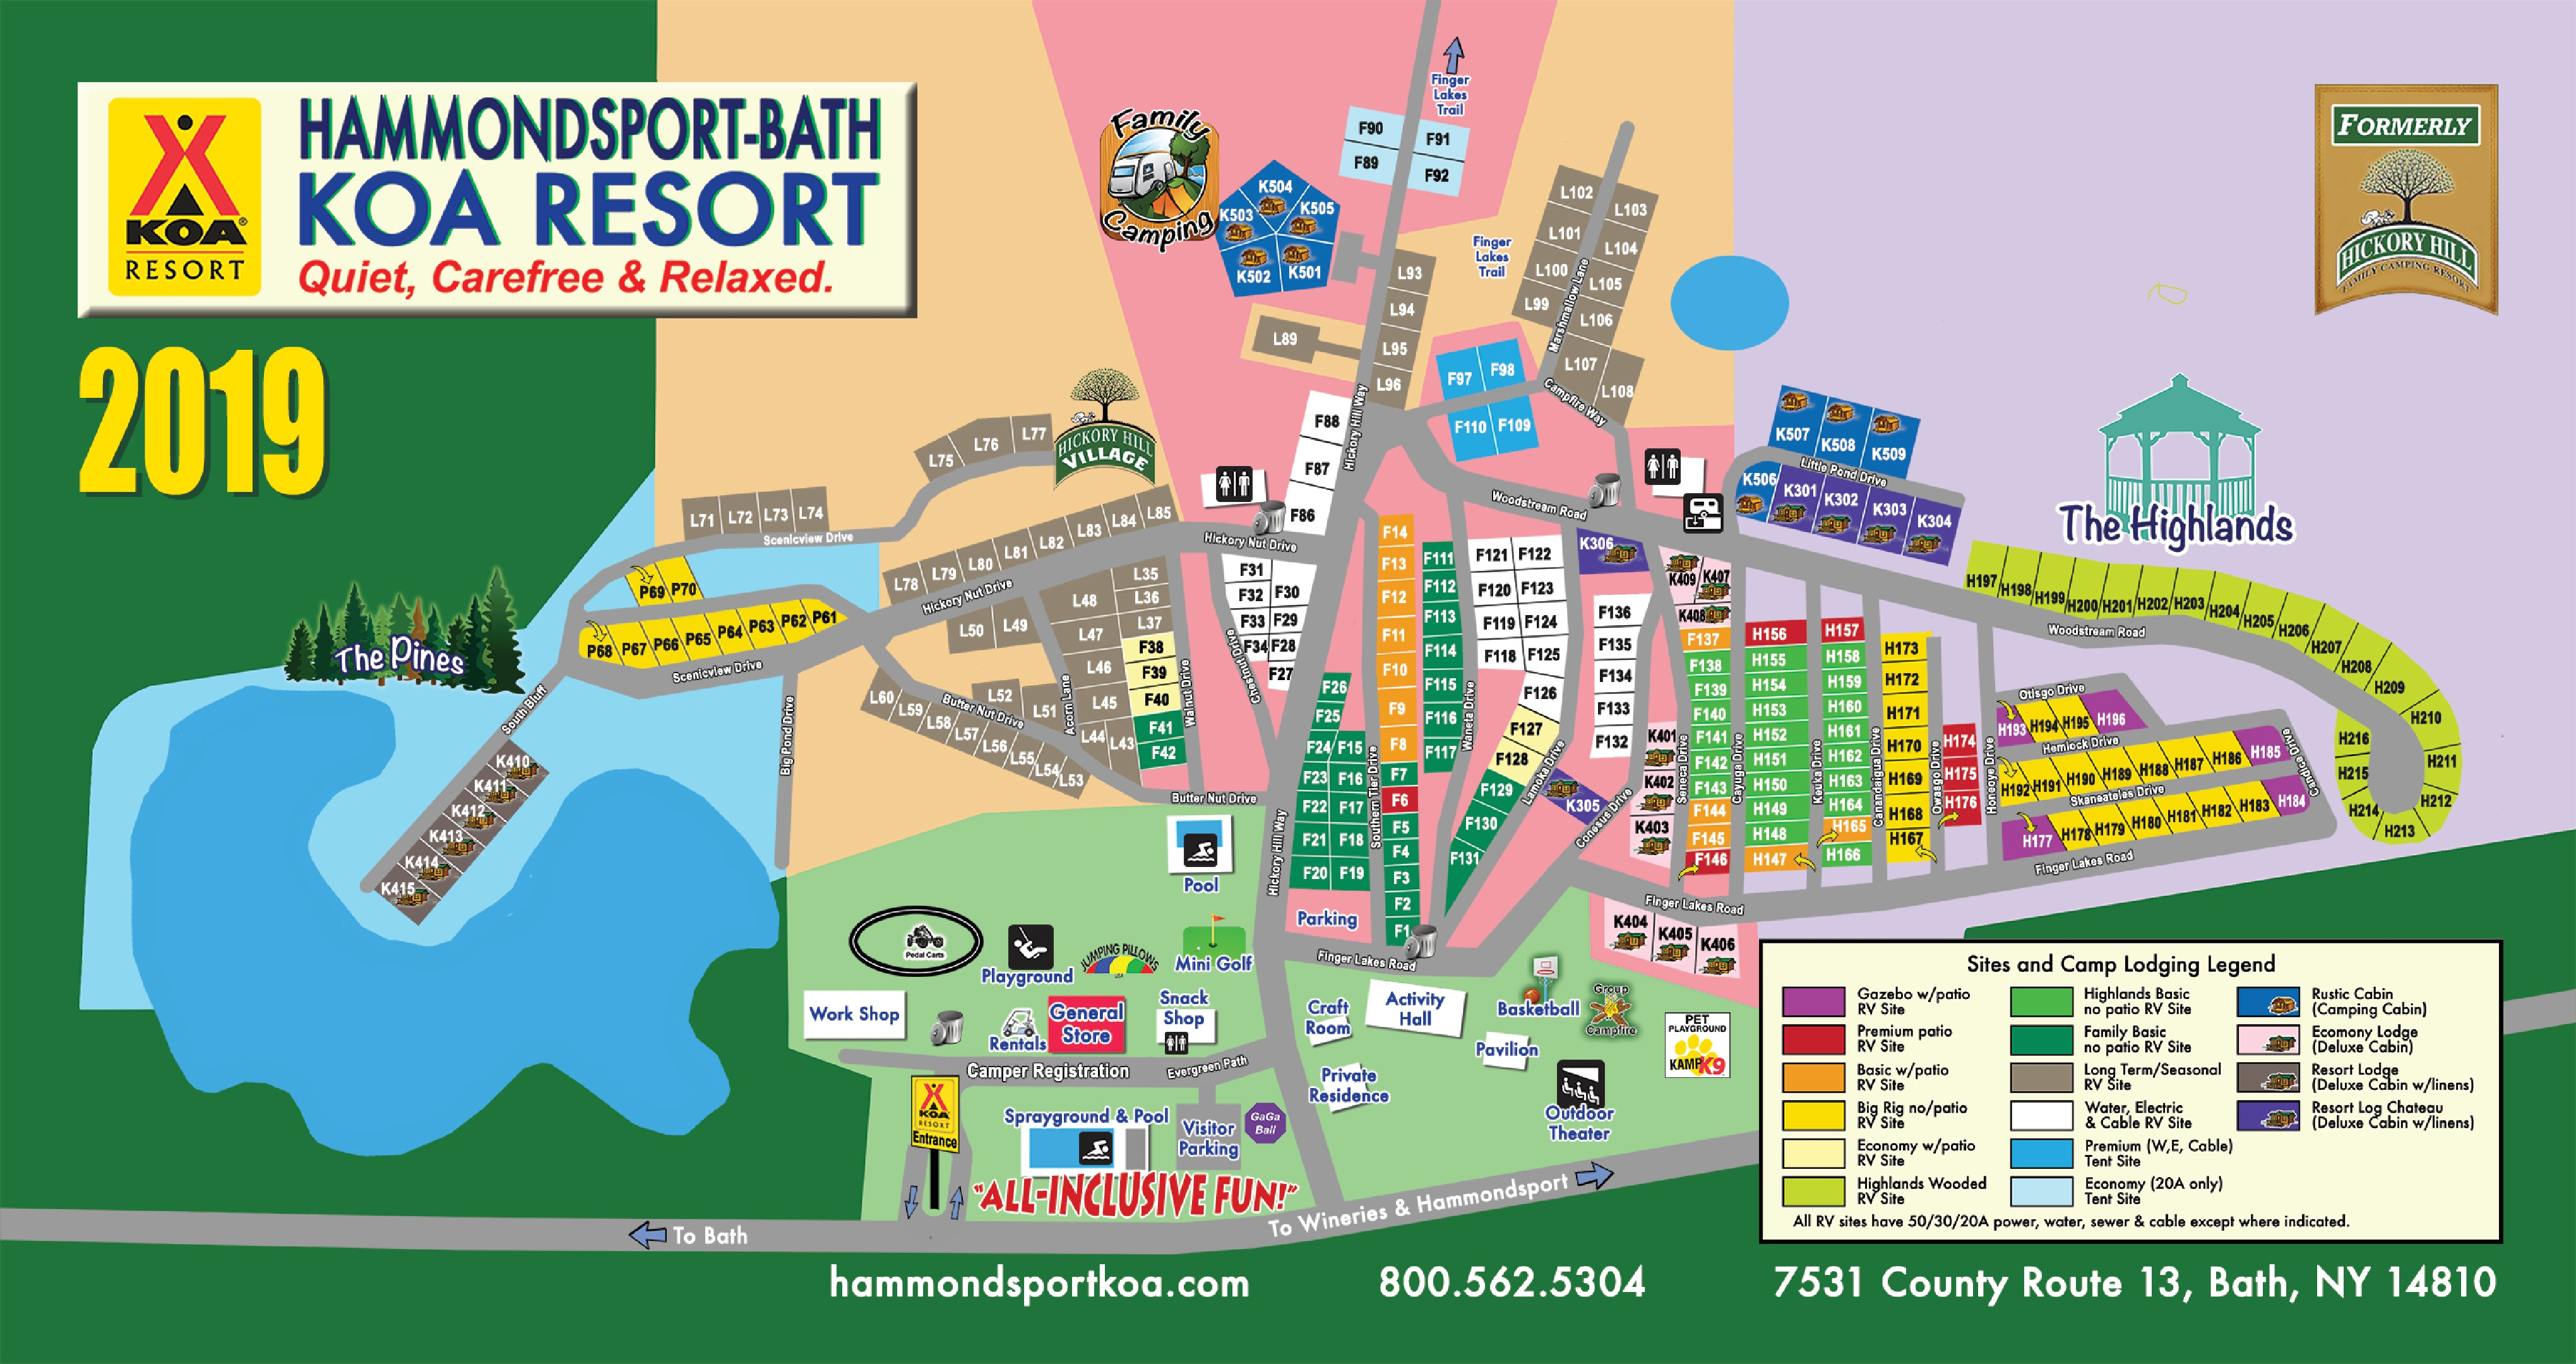 Hammondsport-Bath KOA Resort Map on route map, fll map, zip code map, coarsegold california map, slc map,